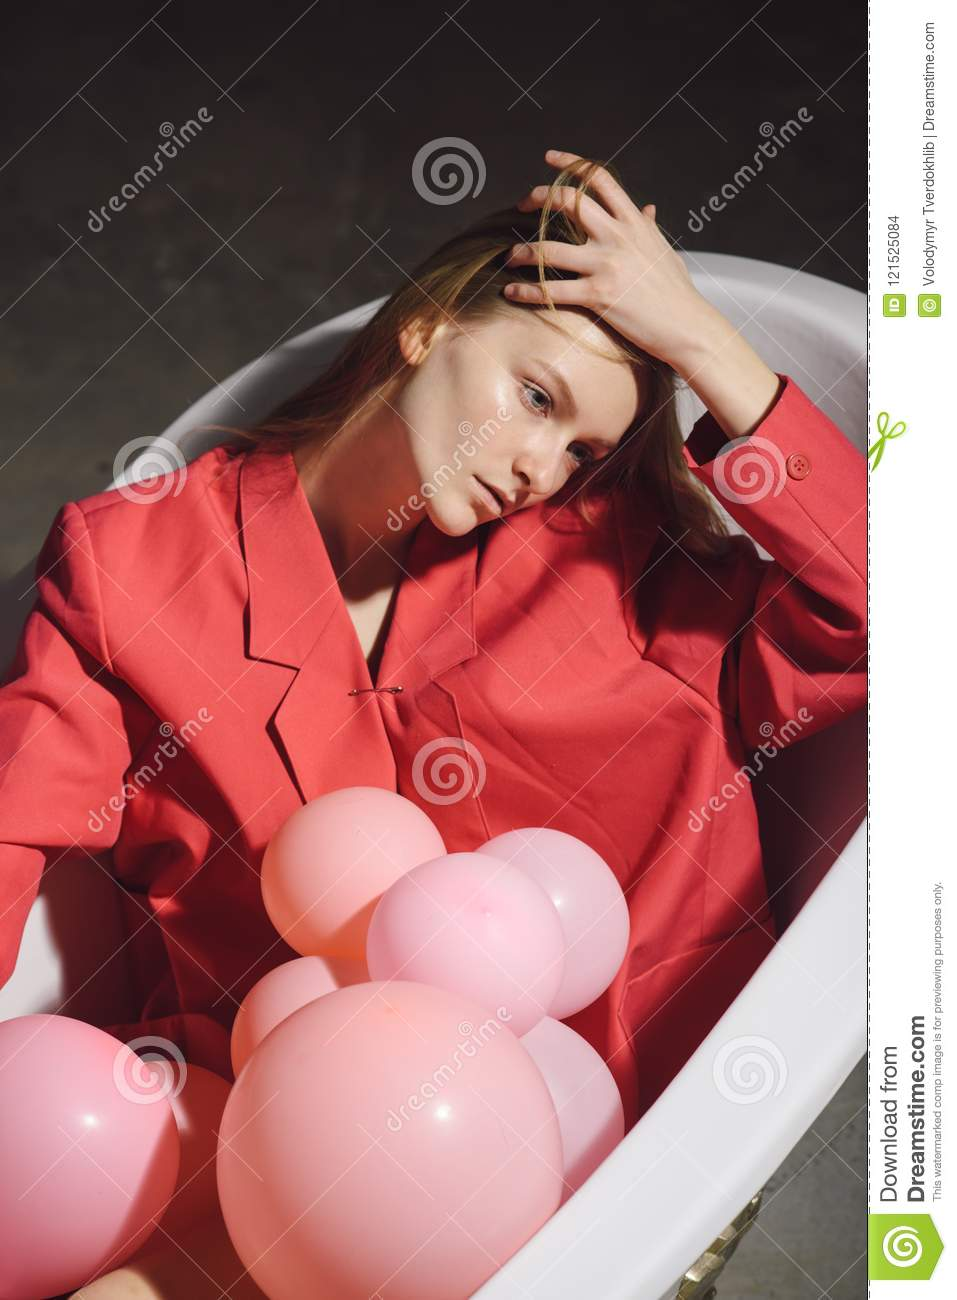 Woman Playing In Her Bath Tub With Pink Colored Balloons